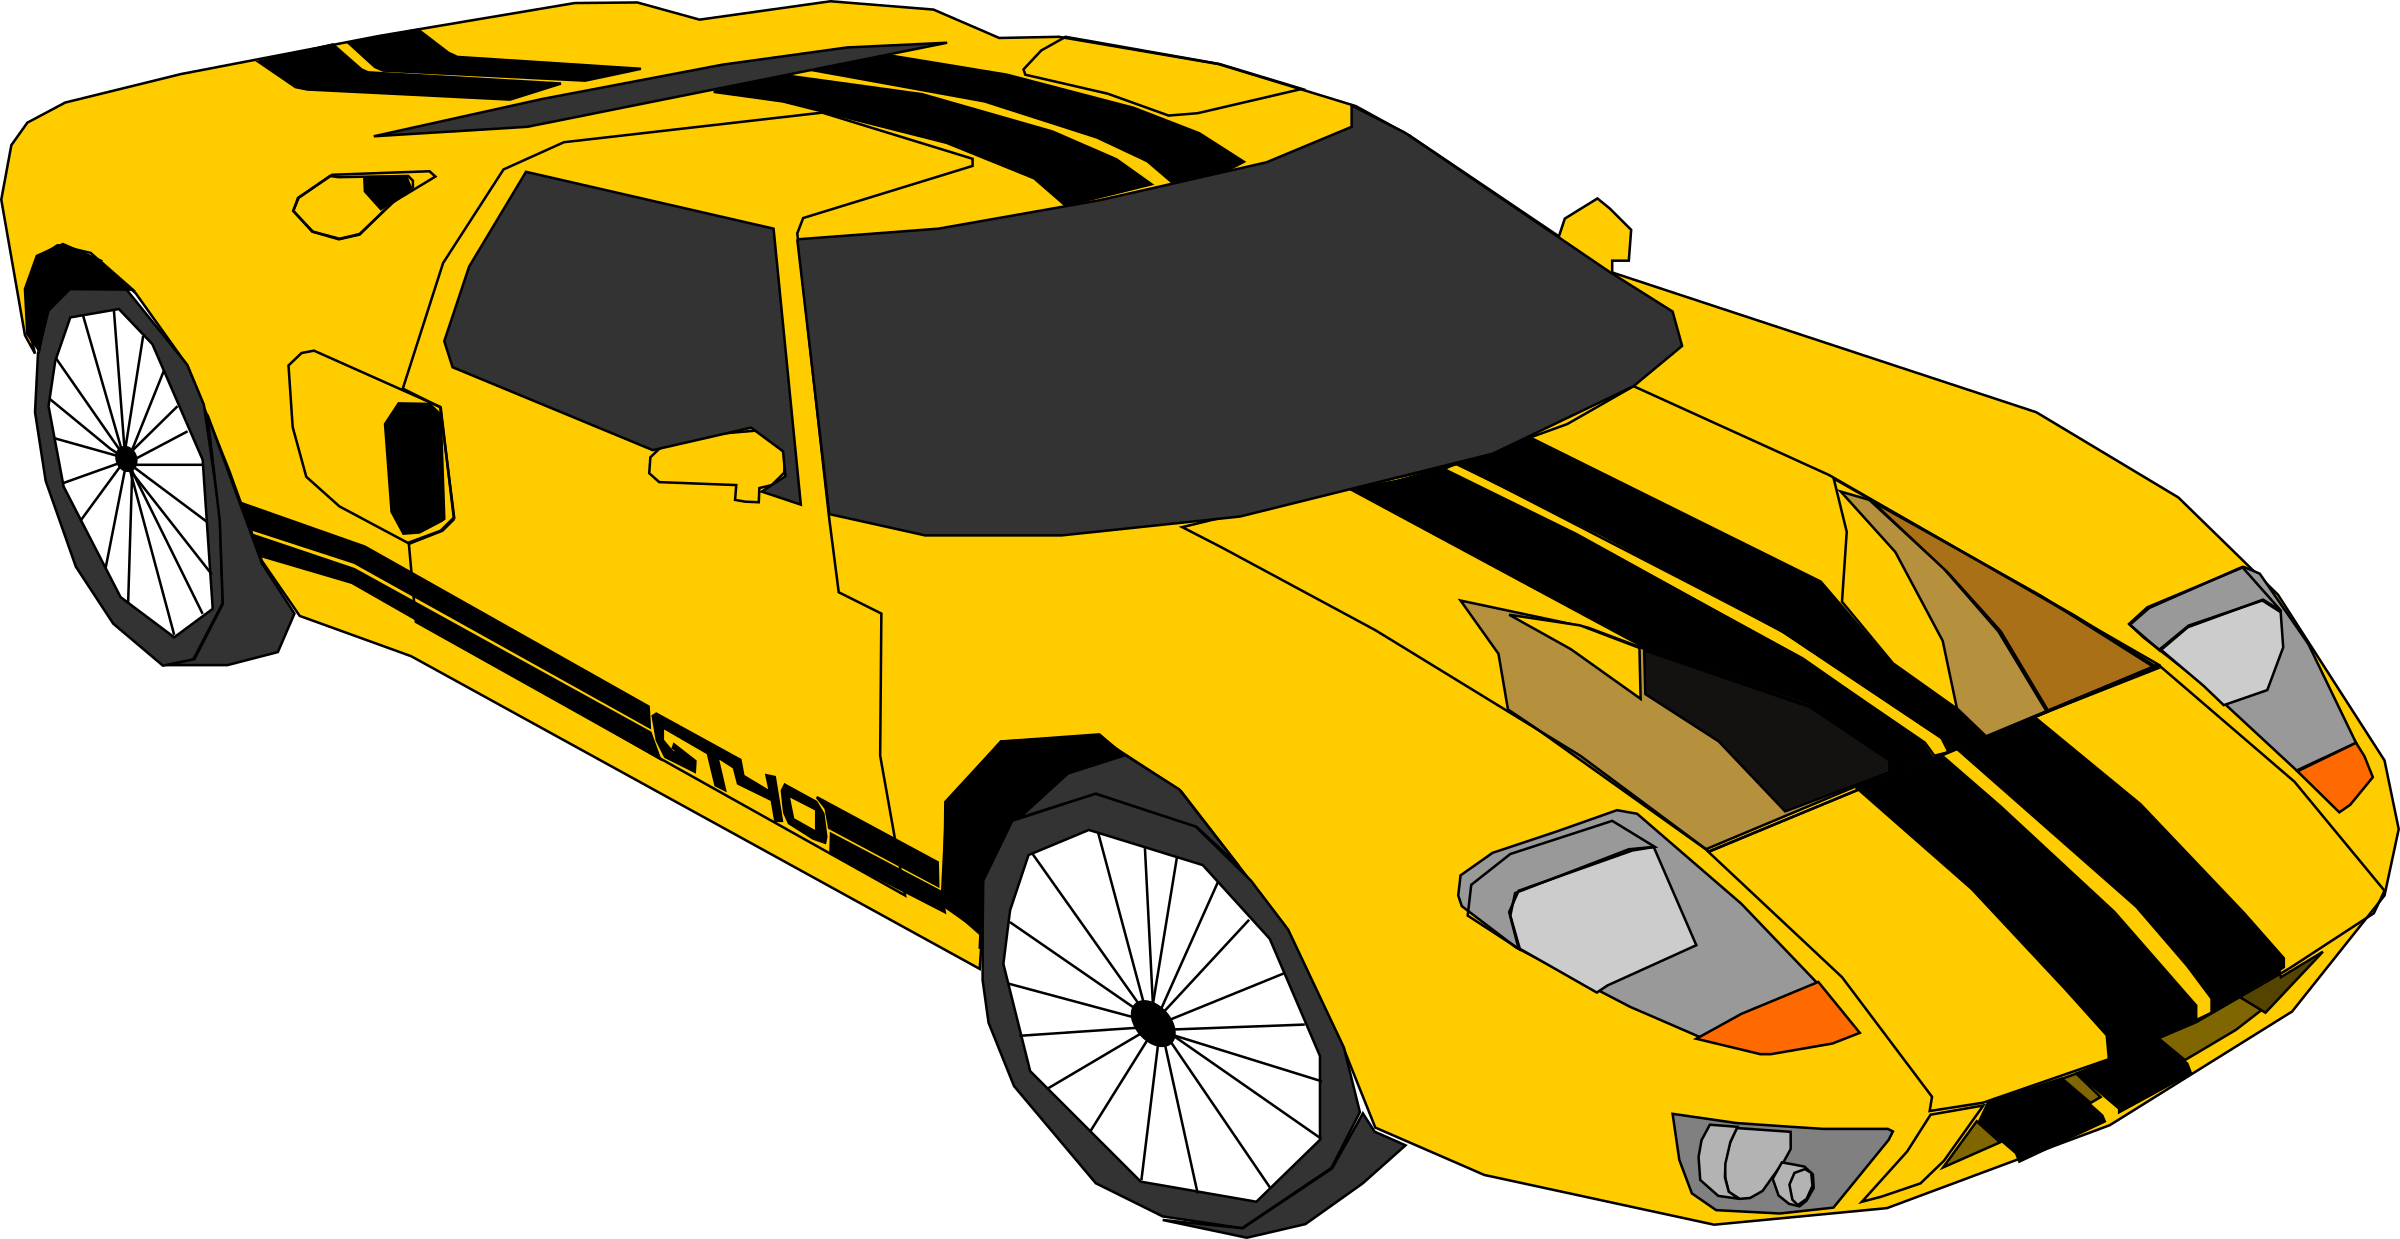 Moving car clipart jpg transparent download 28+ Collection of Yellow Race Car Clipart | High quality, free ... jpg transparent download